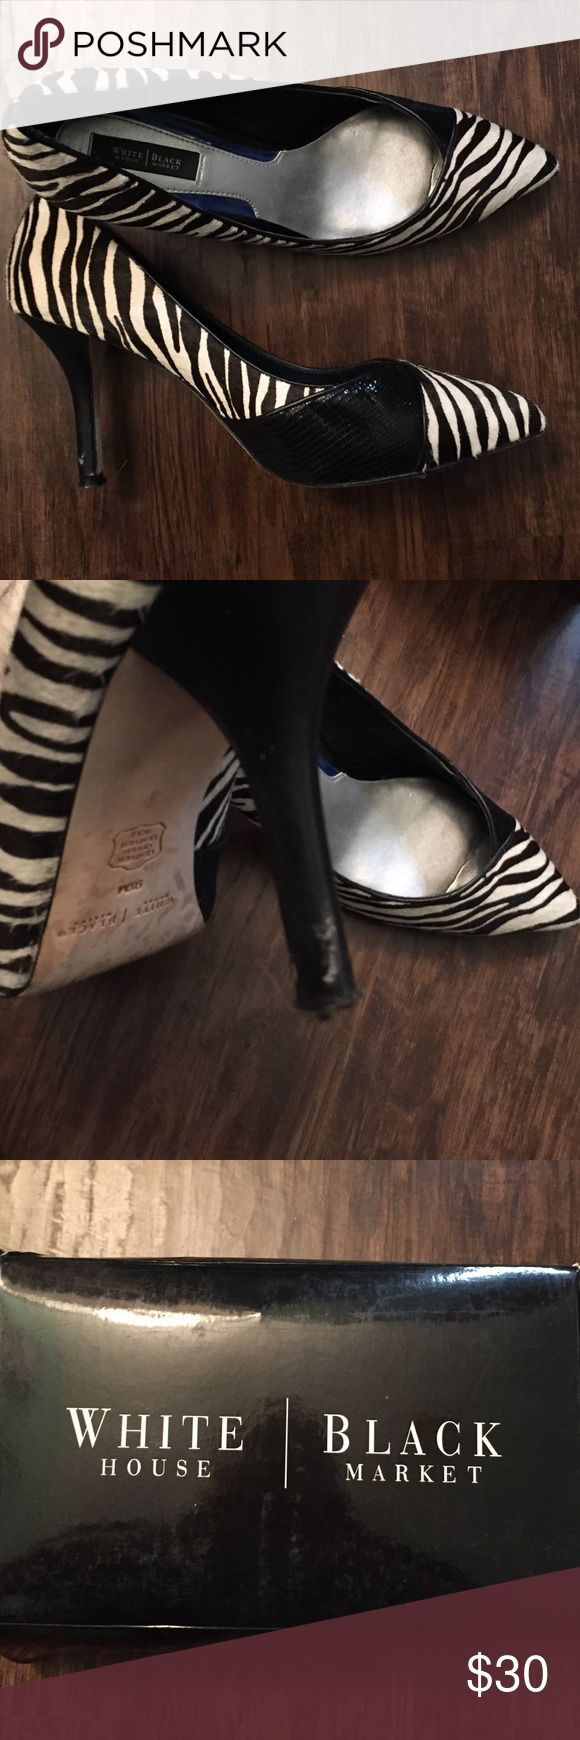 Zebra shoes White House black house black/zebra shoes. The heel needs a little repair. See pic. White House Black Market Shoes Heels